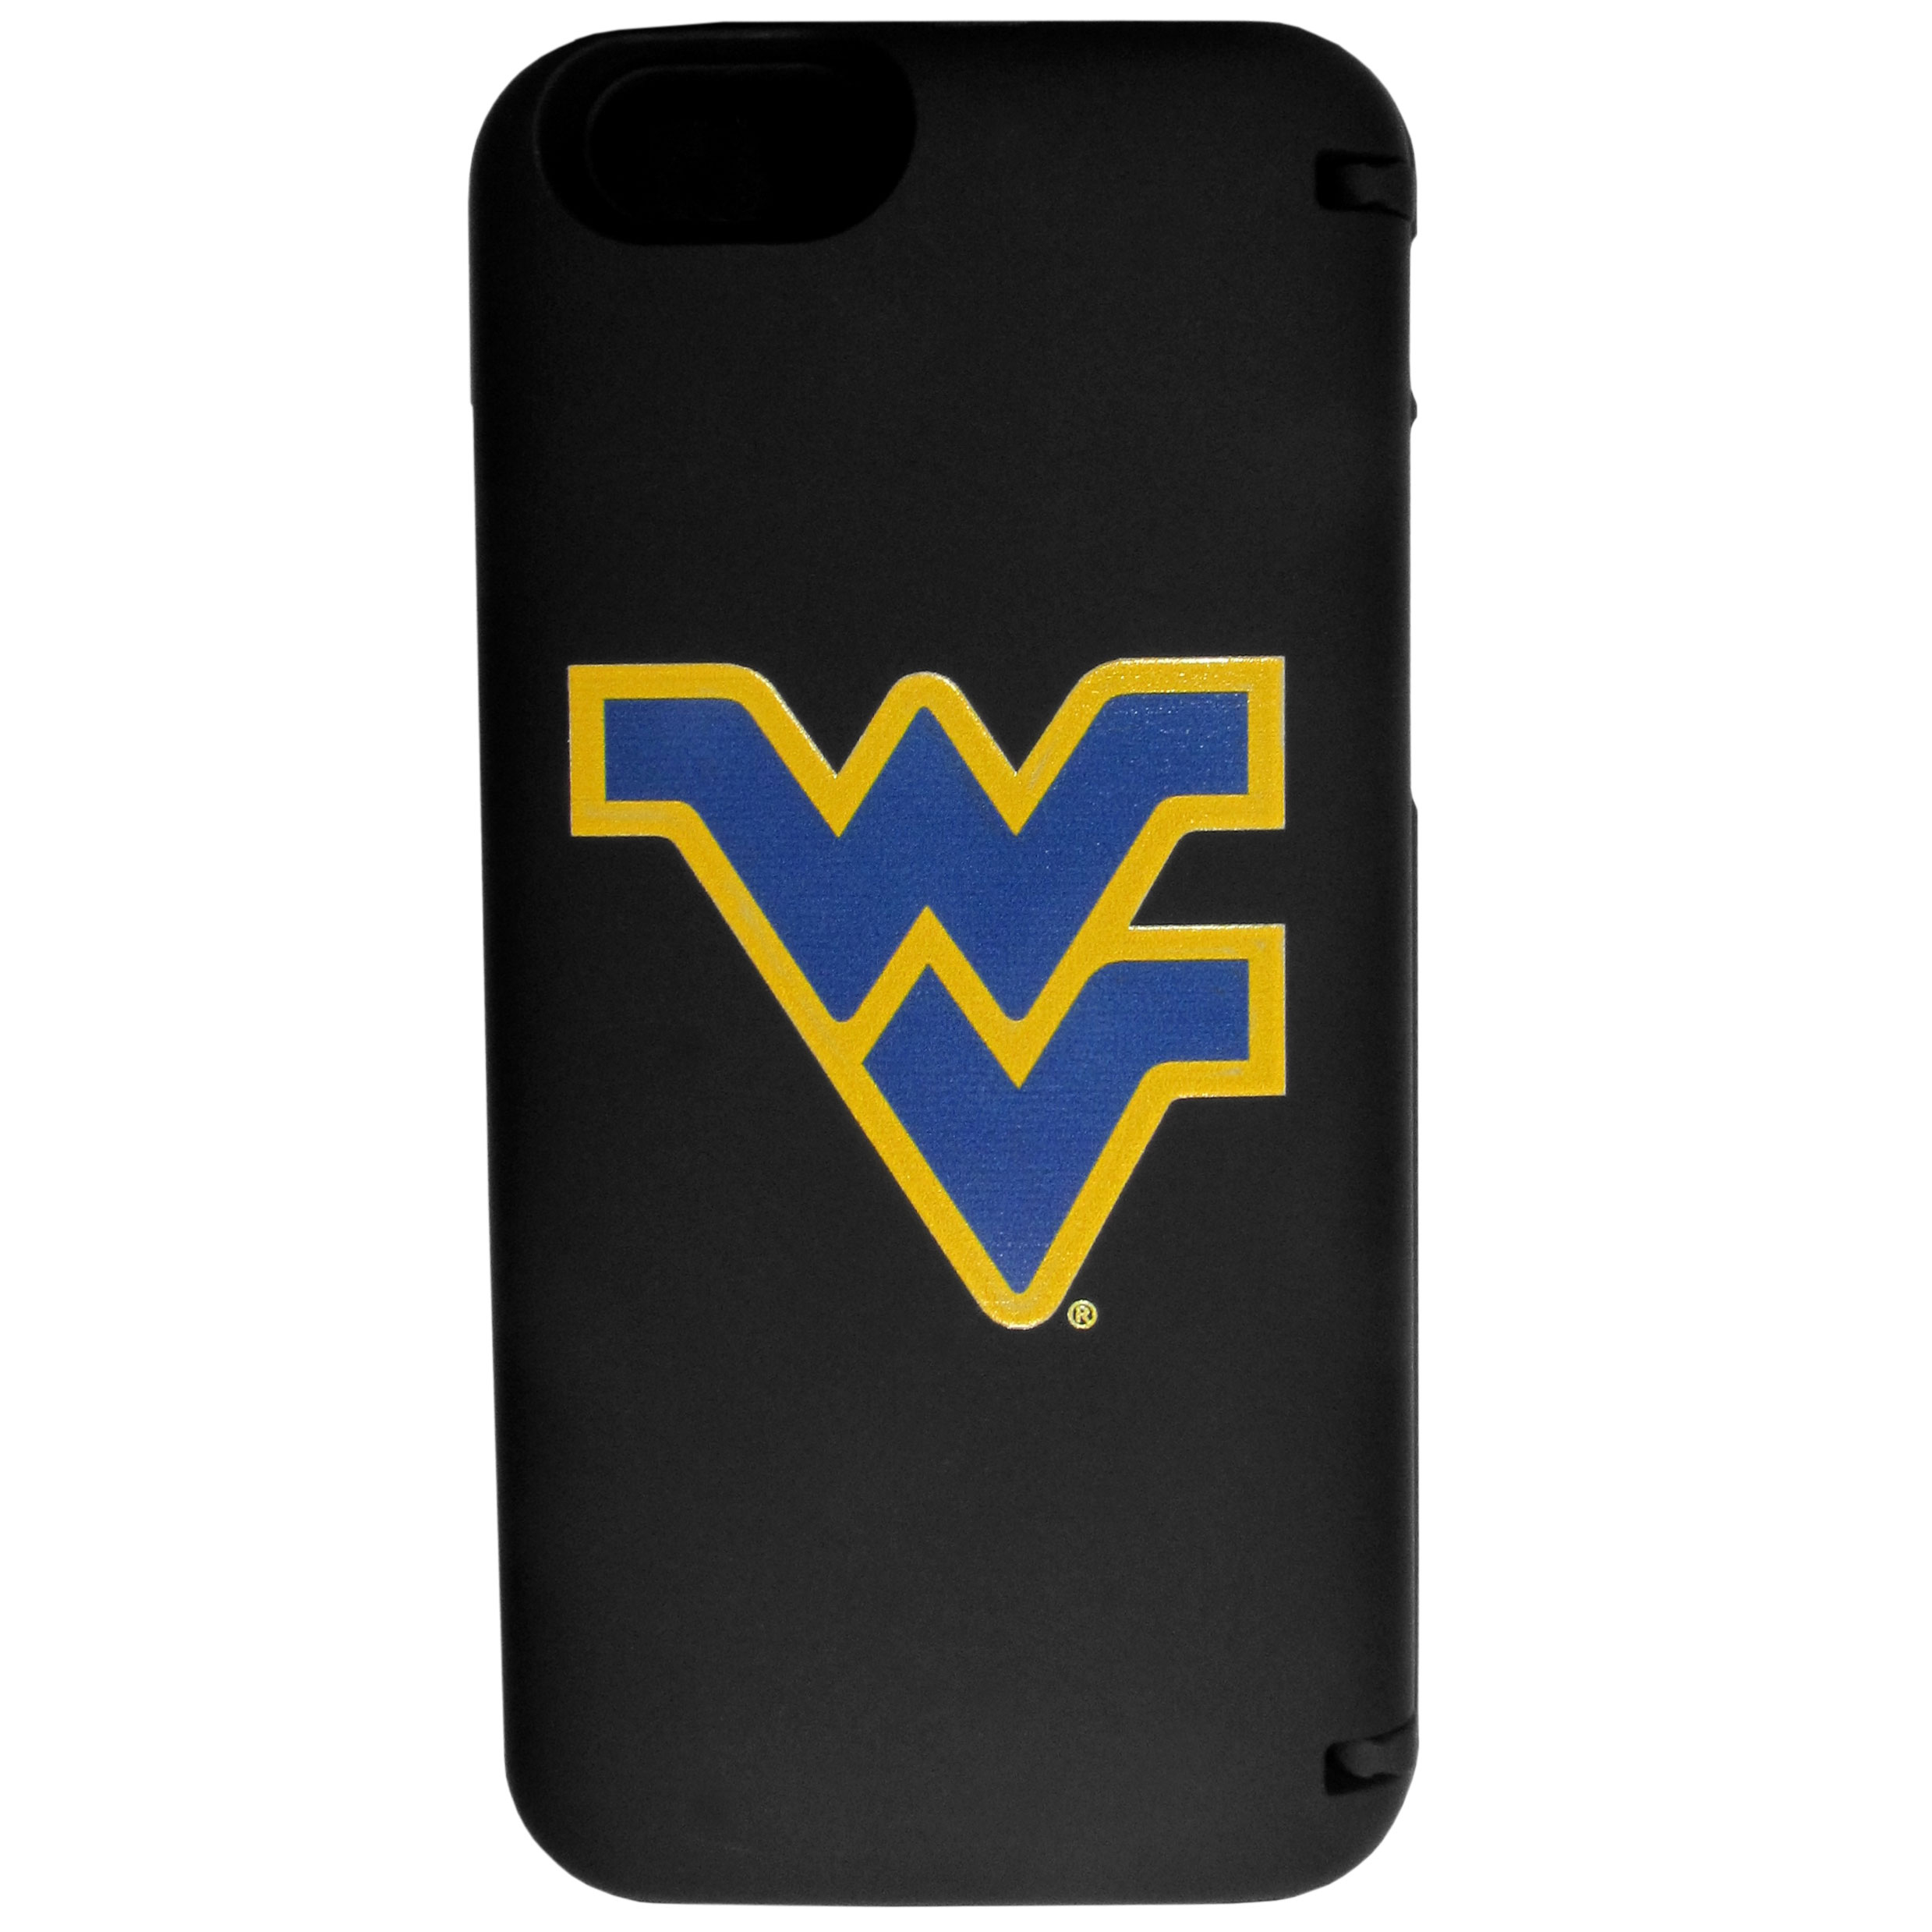 W. Virginia Mountaineers iPhone 6 Everything Case - This case really does have everything but the kitchen sink! The hidden compartment lets you keep your cards, money and tickets to the big game safe and secure and has a compact mirror so you can make sure your game face is ready to go. It also comes with a kickstand to make chatting and watching videos a breeze. The wrist strap allows you to travel with ease with your everything case. If that's not enough, it also comes with the W. Virginia Mountaineers logo printed in expert detail on the front.